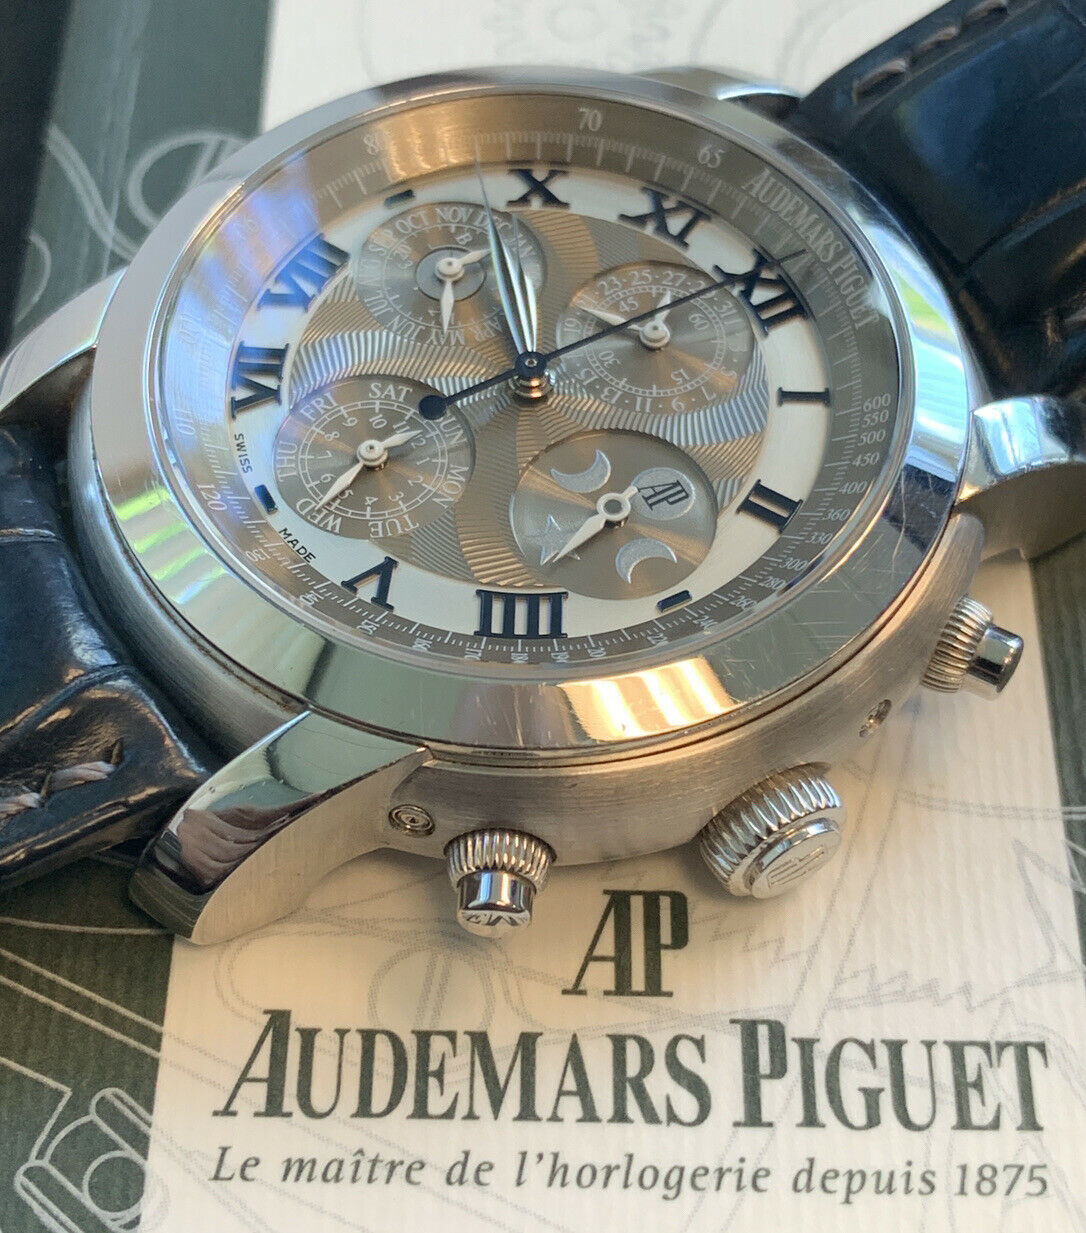 Audemars Piguet Jules Arnold's All-Stars 18K Gold Watch – 26094BC.OO.D095CR.01 - watch picture 1